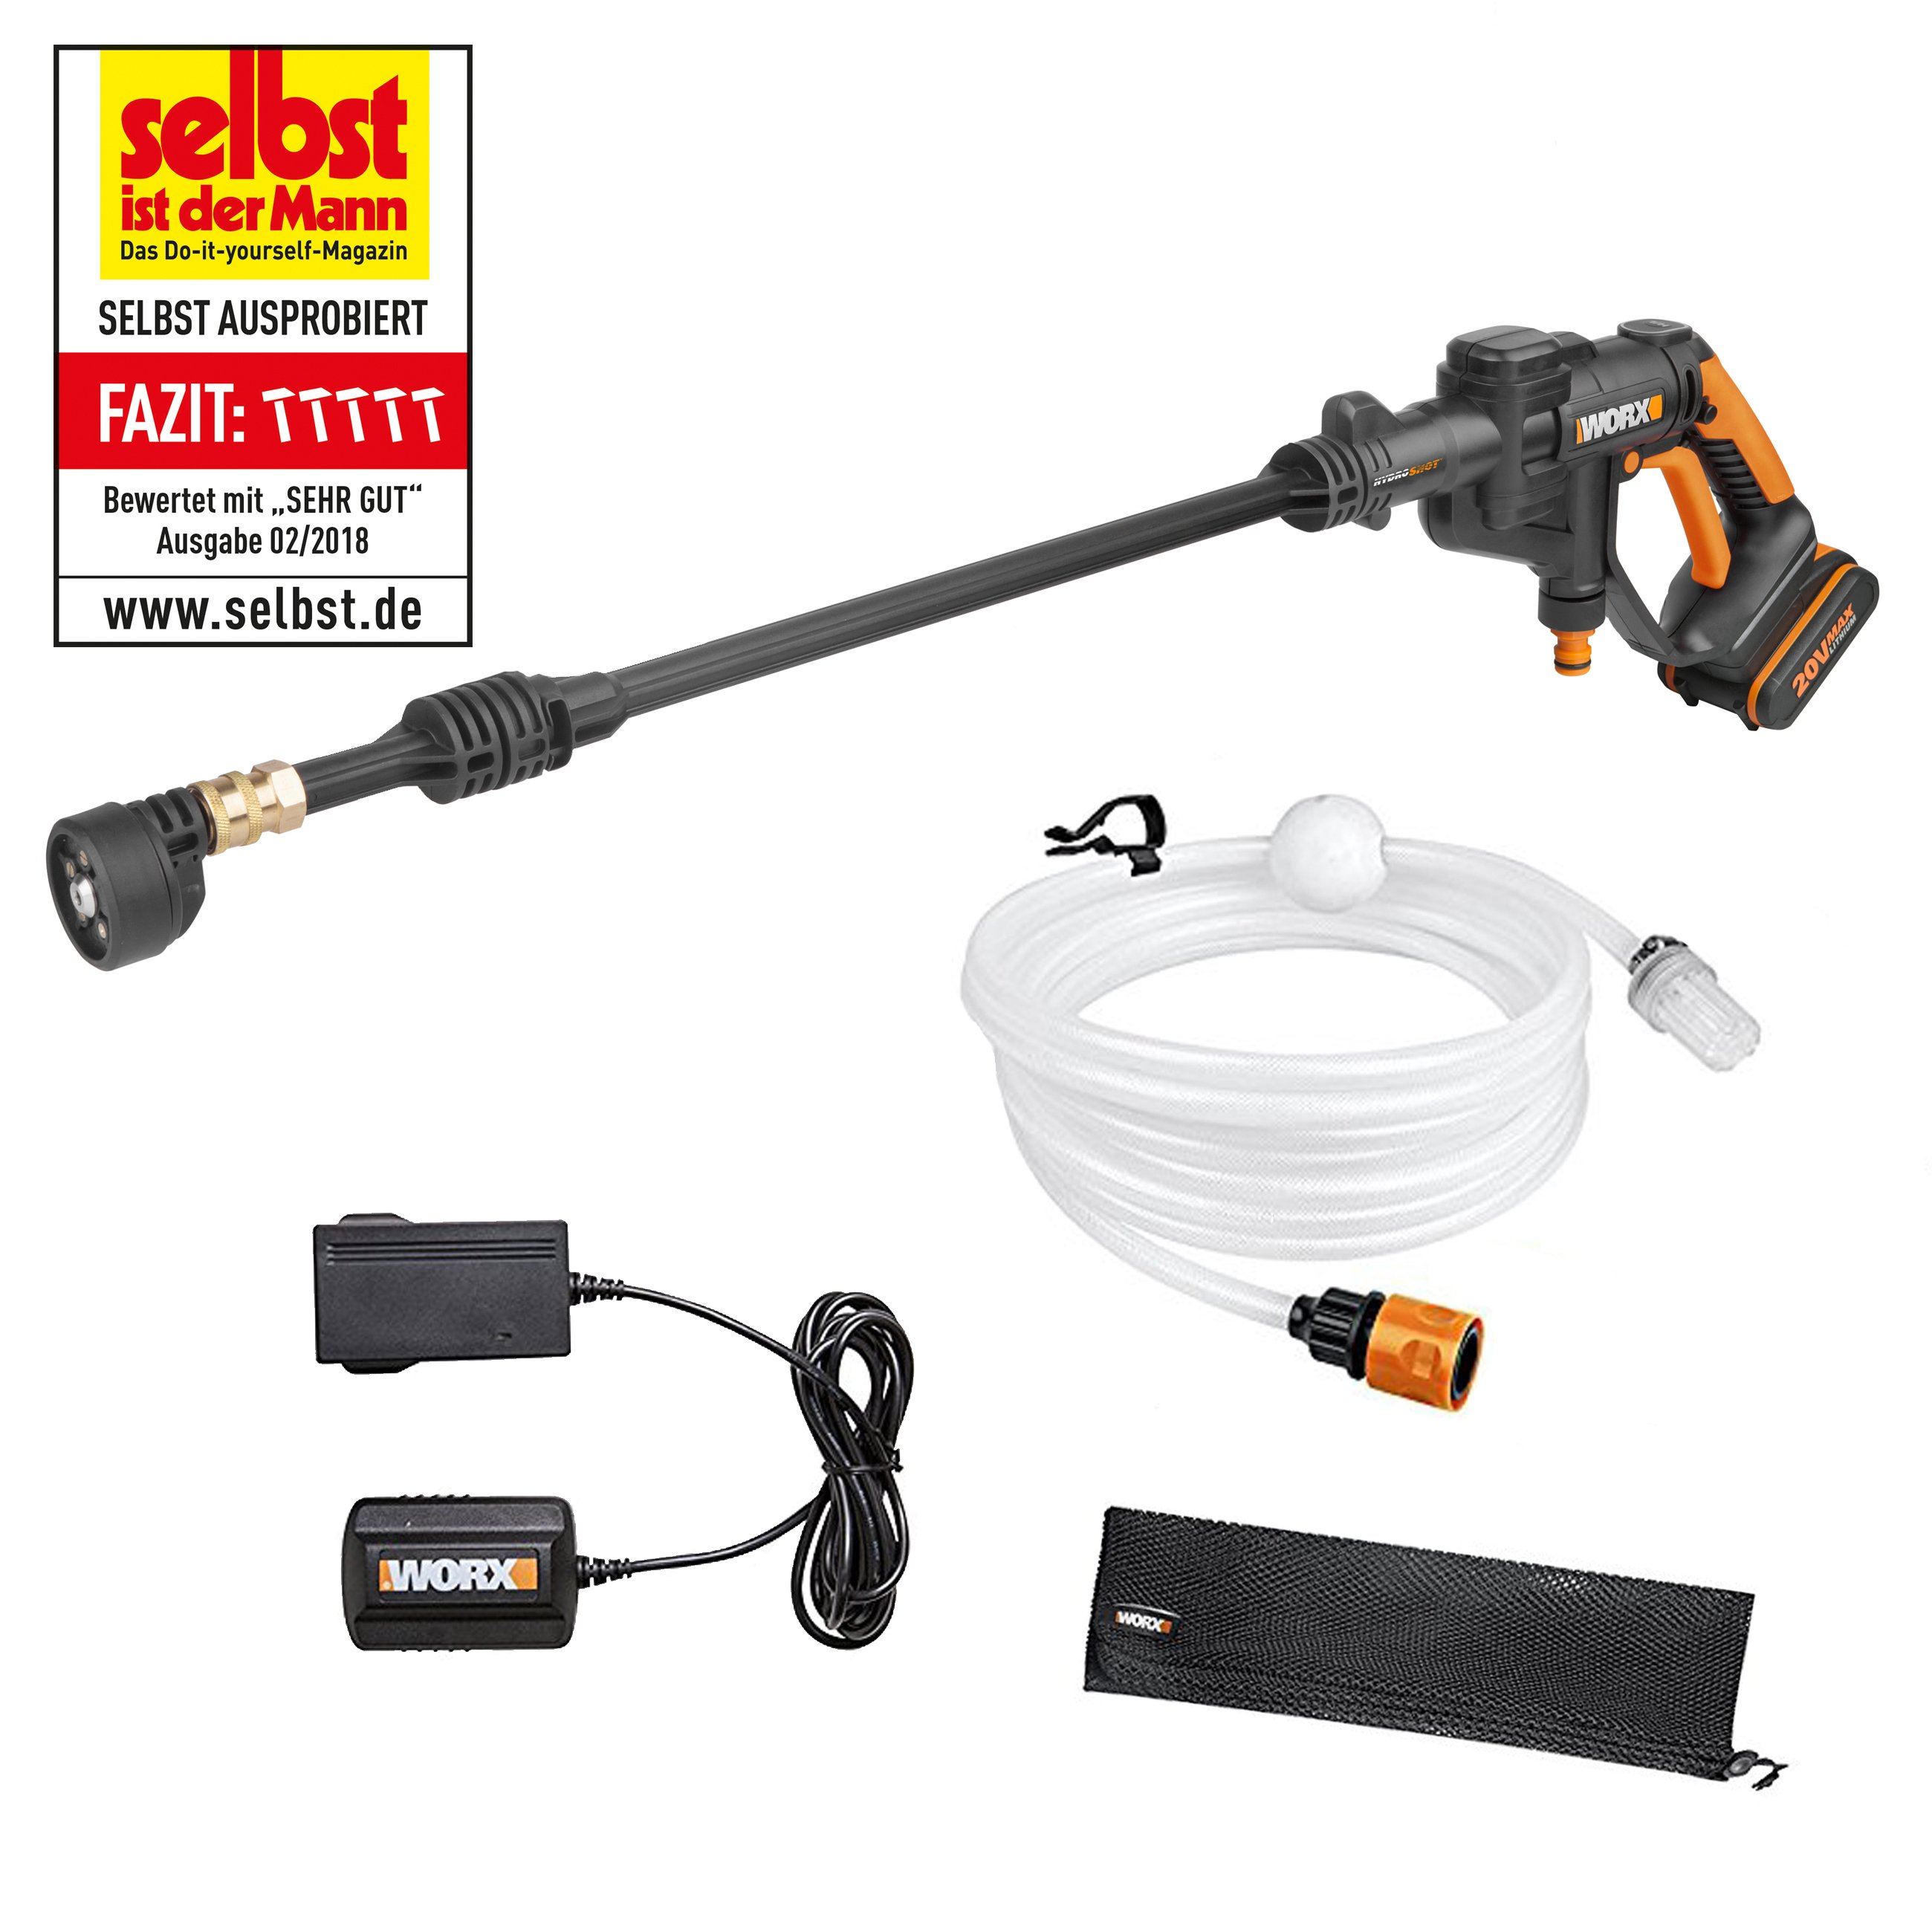 hydroshot worx 20v akku hochdruckreiniger hydroshot wg629e. Black Bedroom Furniture Sets. Home Design Ideas